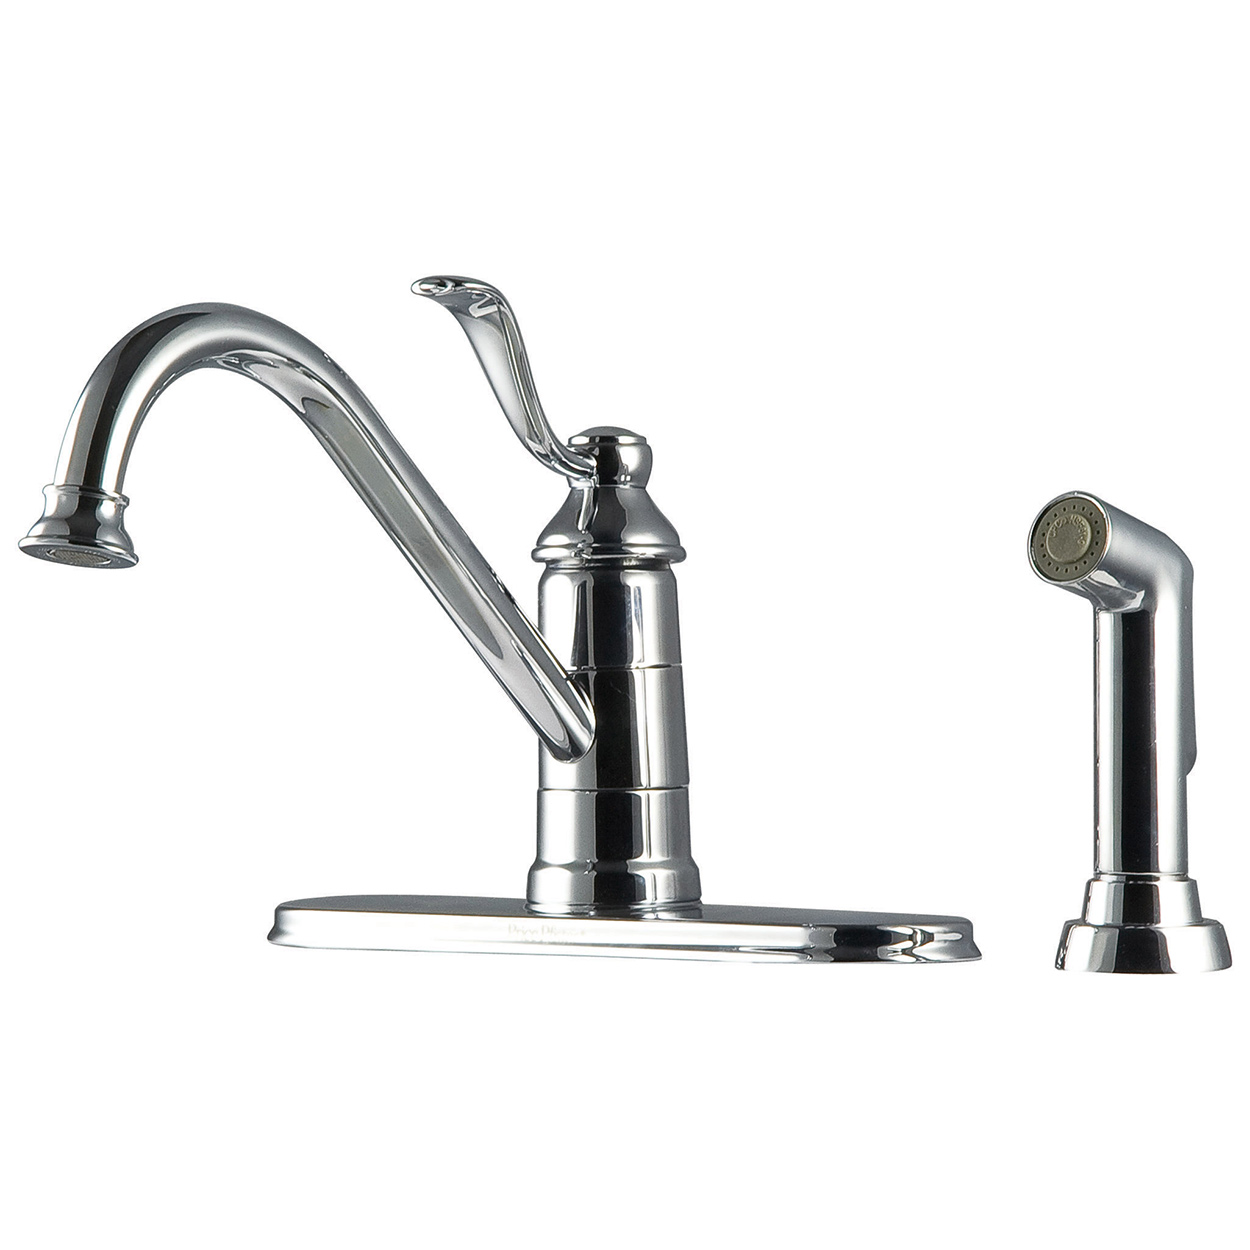 Pfister GT344PC0 Parisa Kitchen Faucet With Flex Line Supply Lines